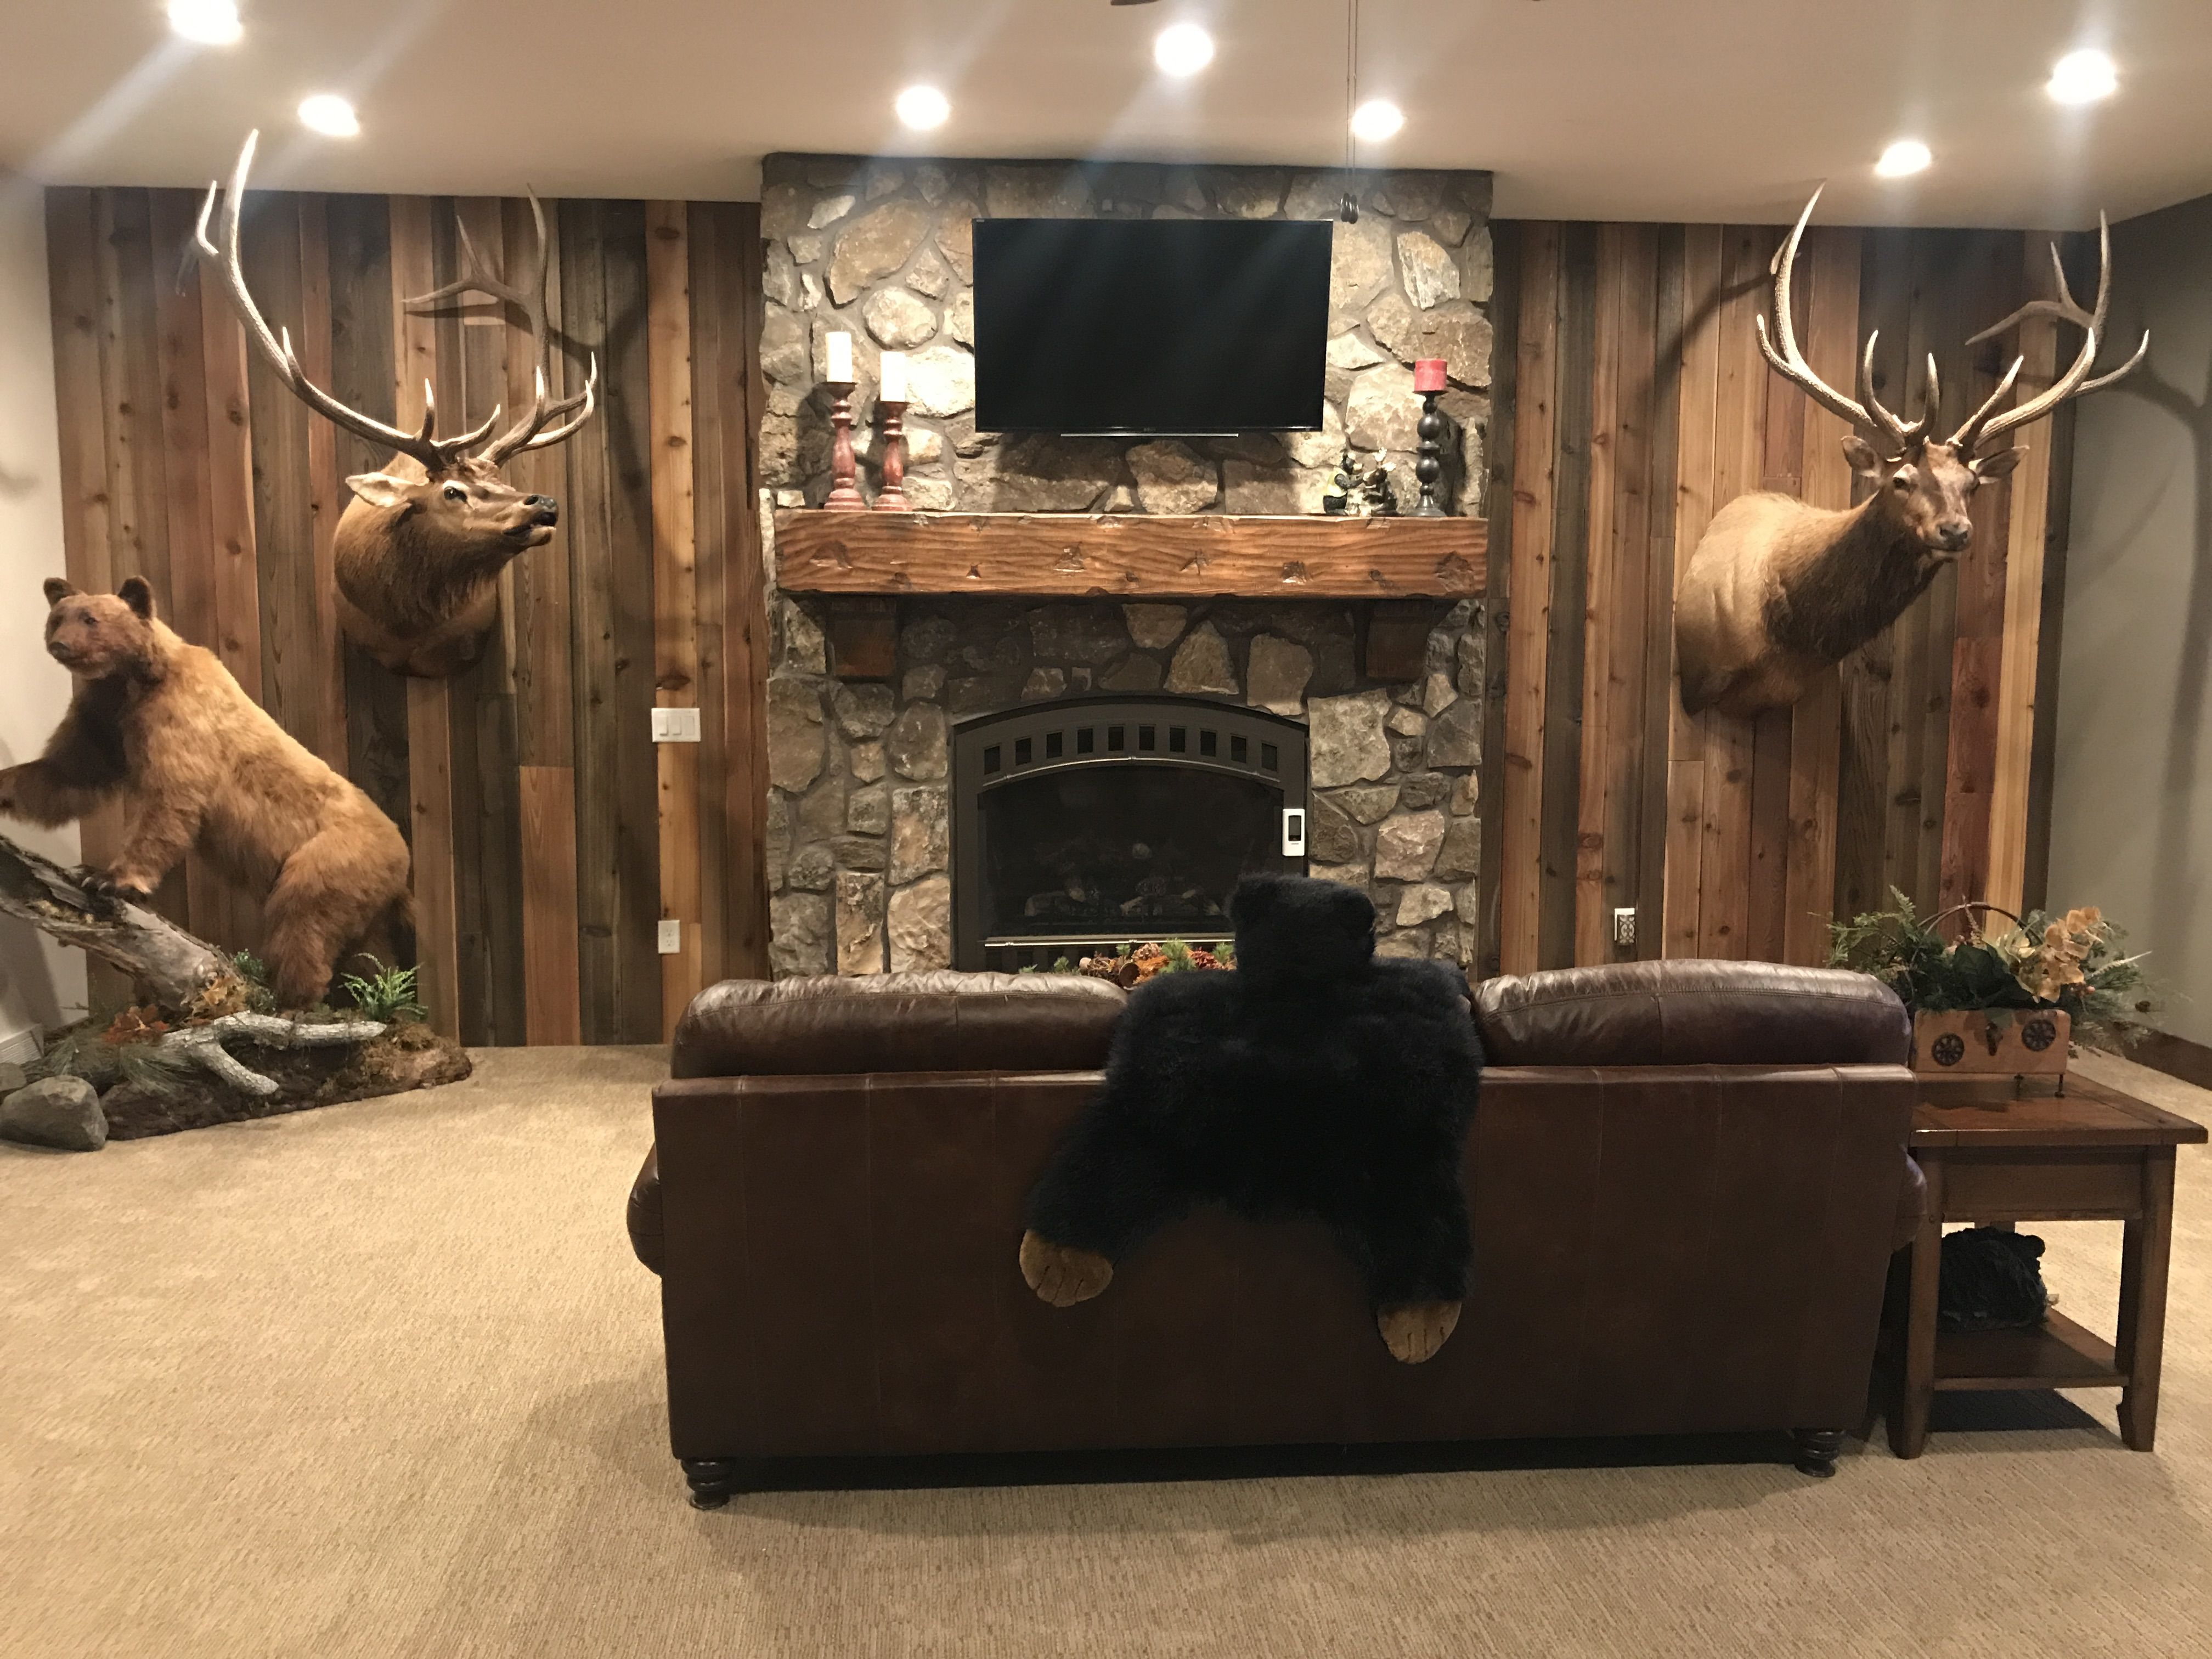 Man Cave Vote : Take a look at this sweet man cave it wouldn t be complete